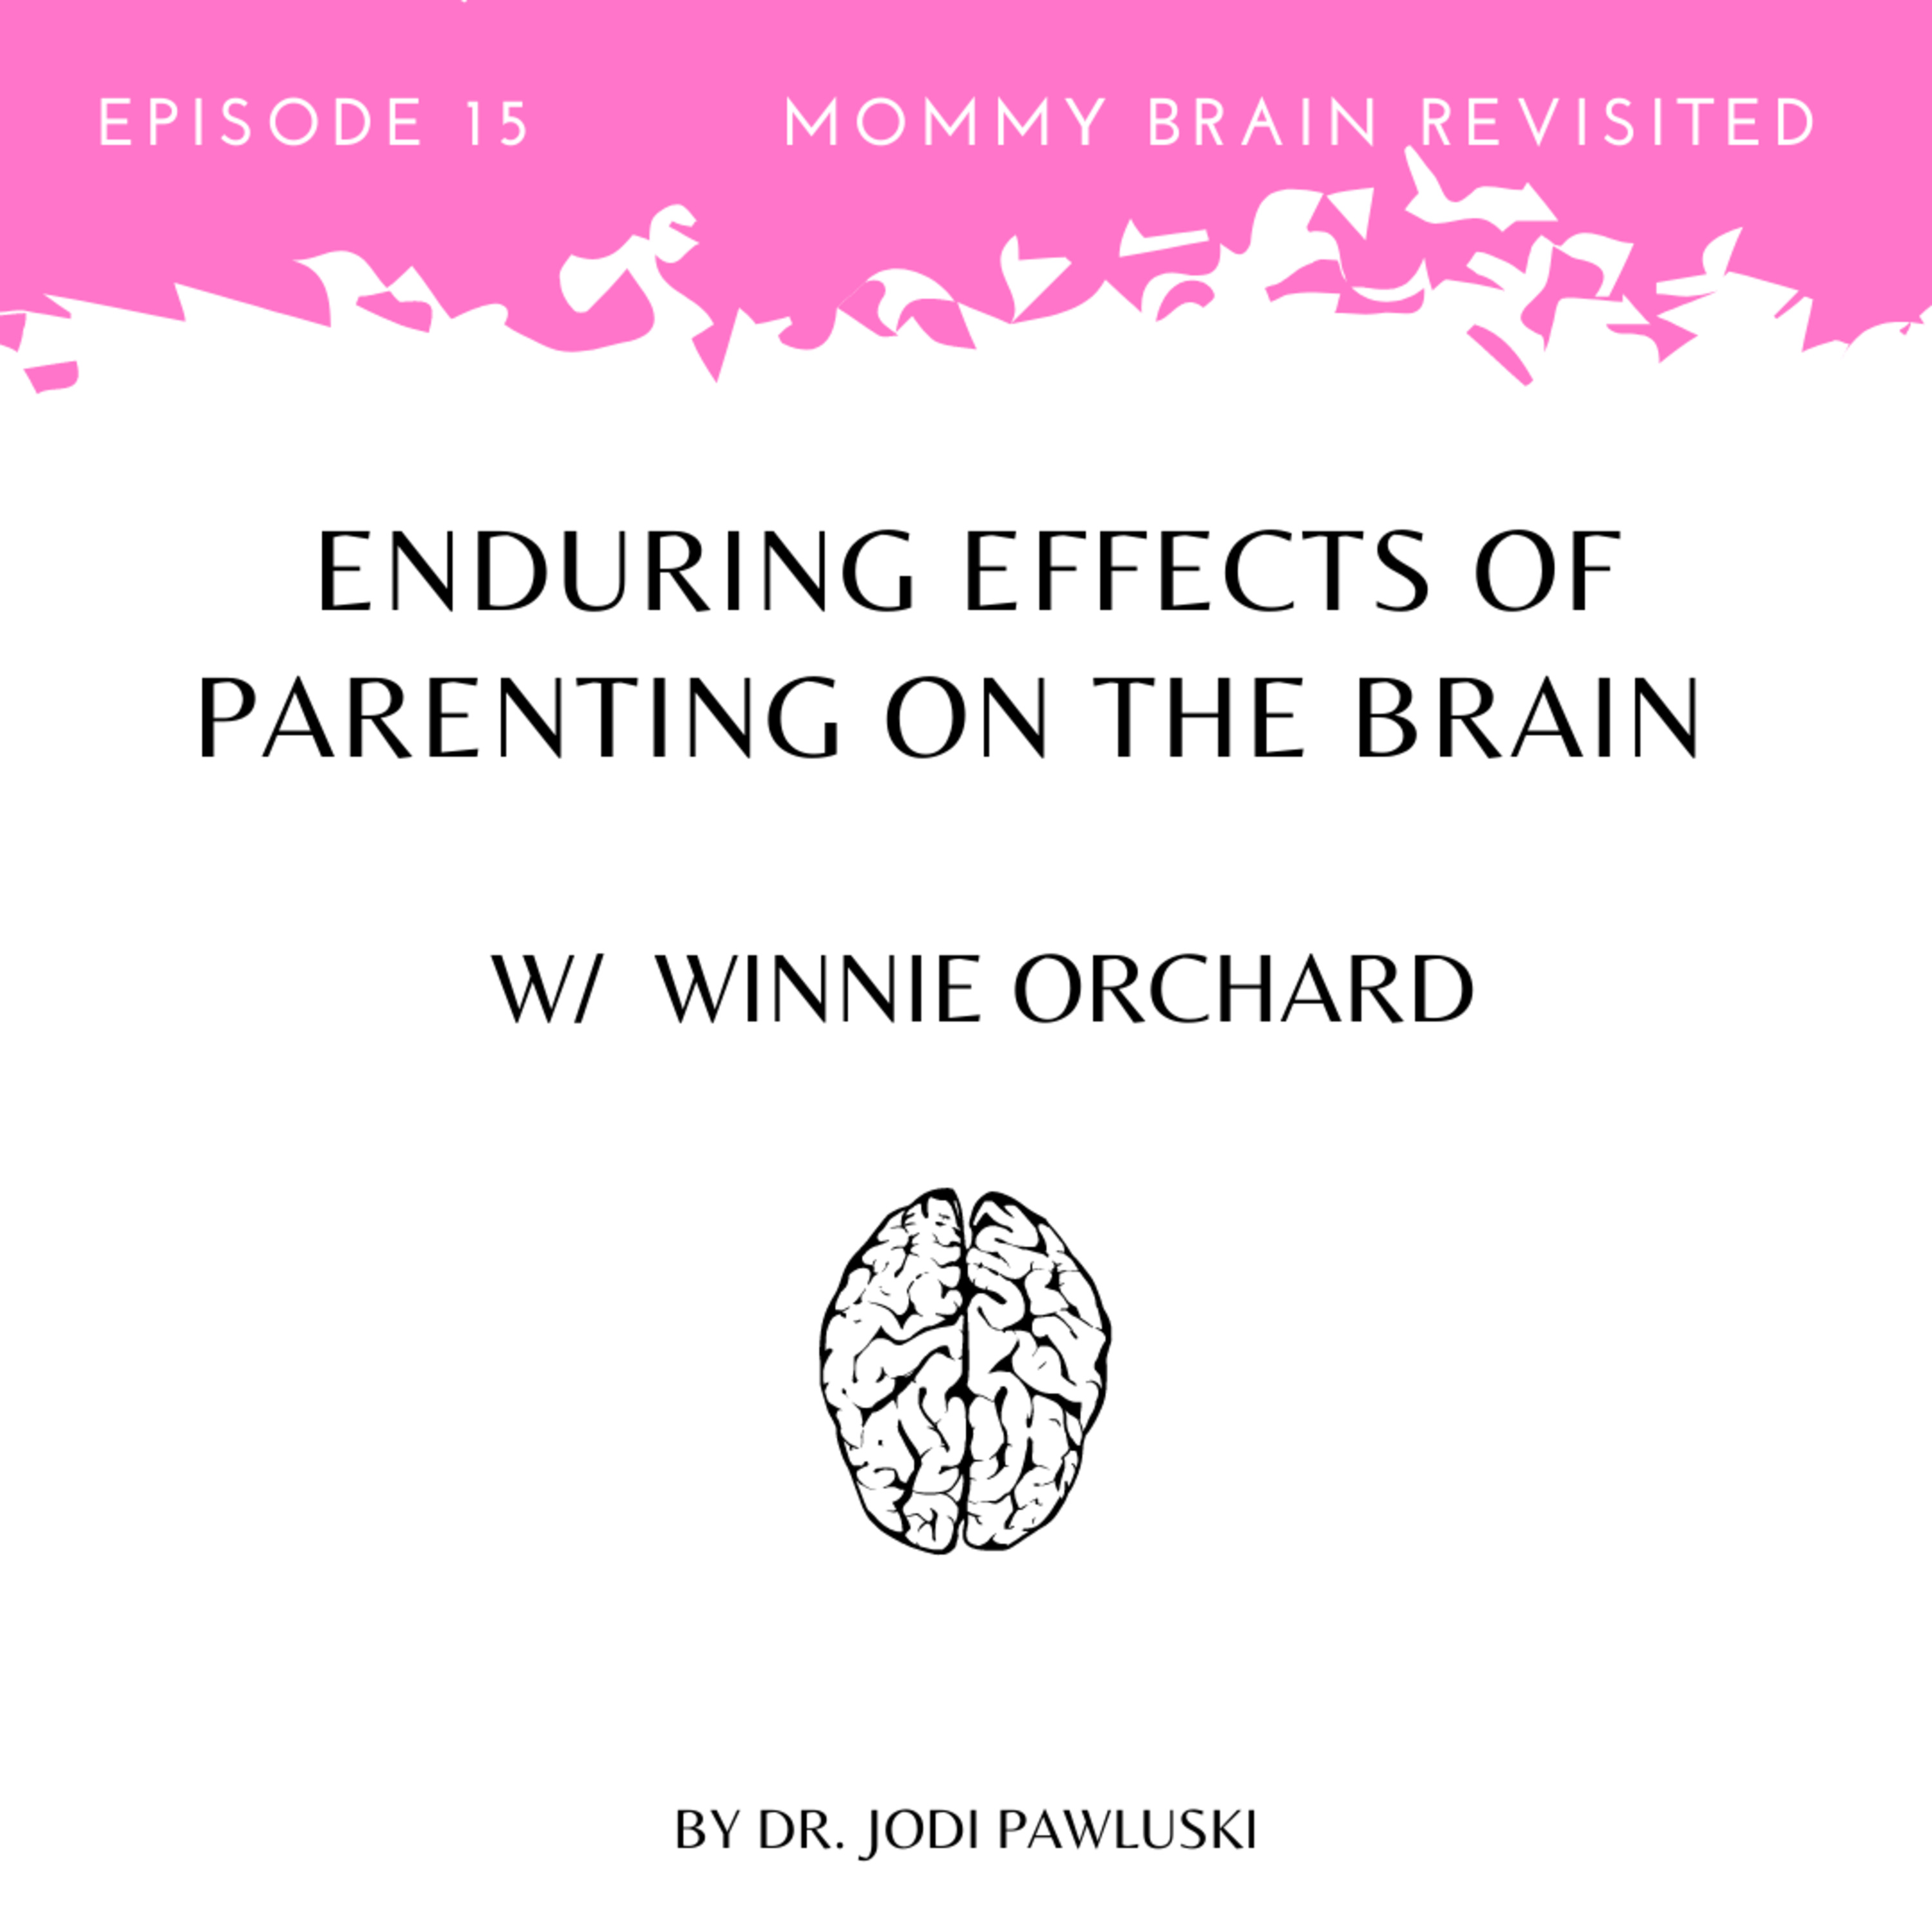 15. Enduring Effects of Parenting on the Brain